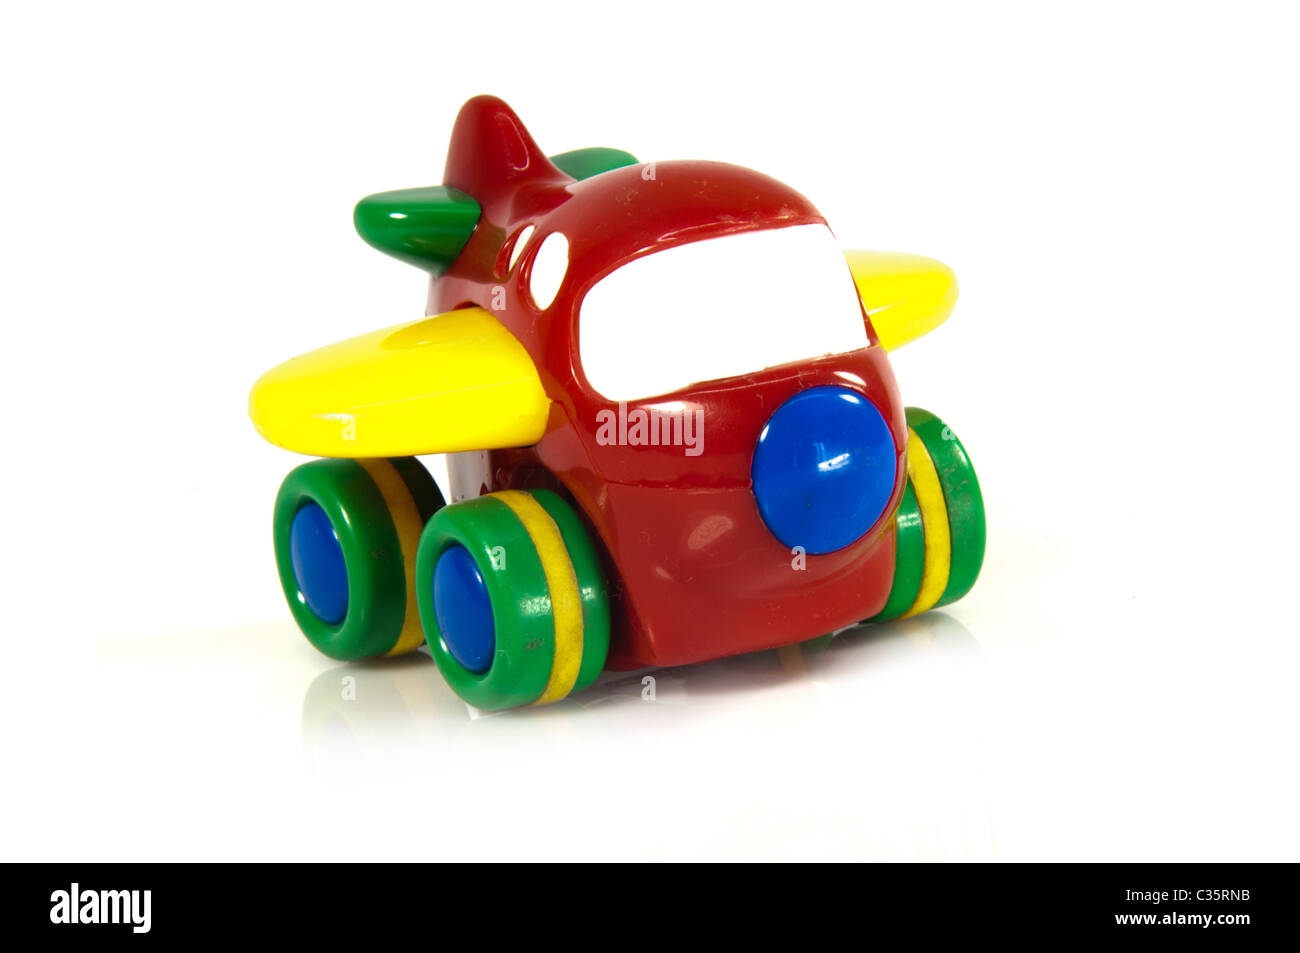 Toy plane - Stock Image